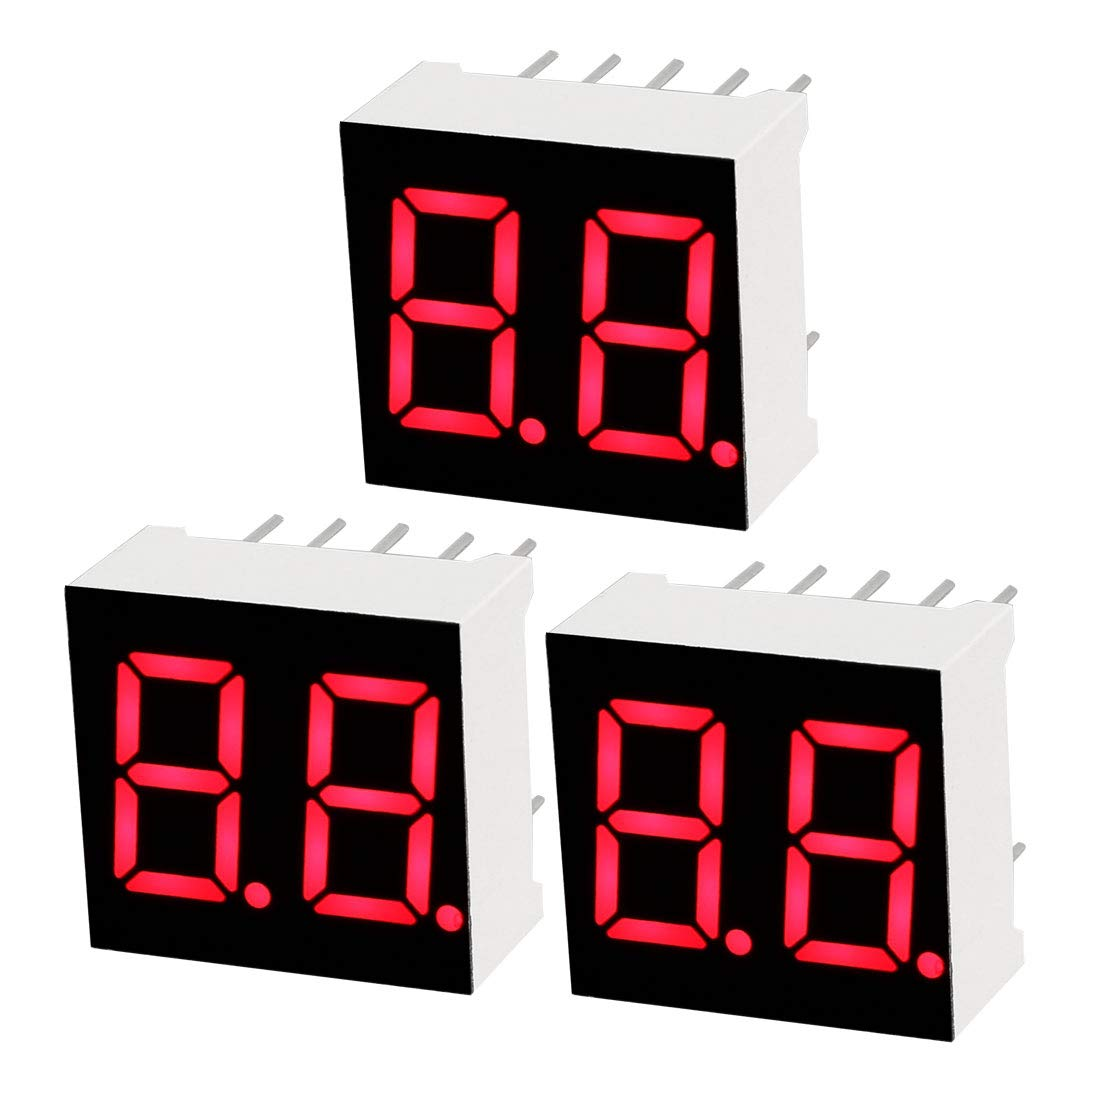 """uxcell Common Anode 10 Pin 2 Bit 7 Segment 0.59 x 0.55 x 0.28 Inch 0.35"""" Red LED Display Digital Tube 3pcs"""